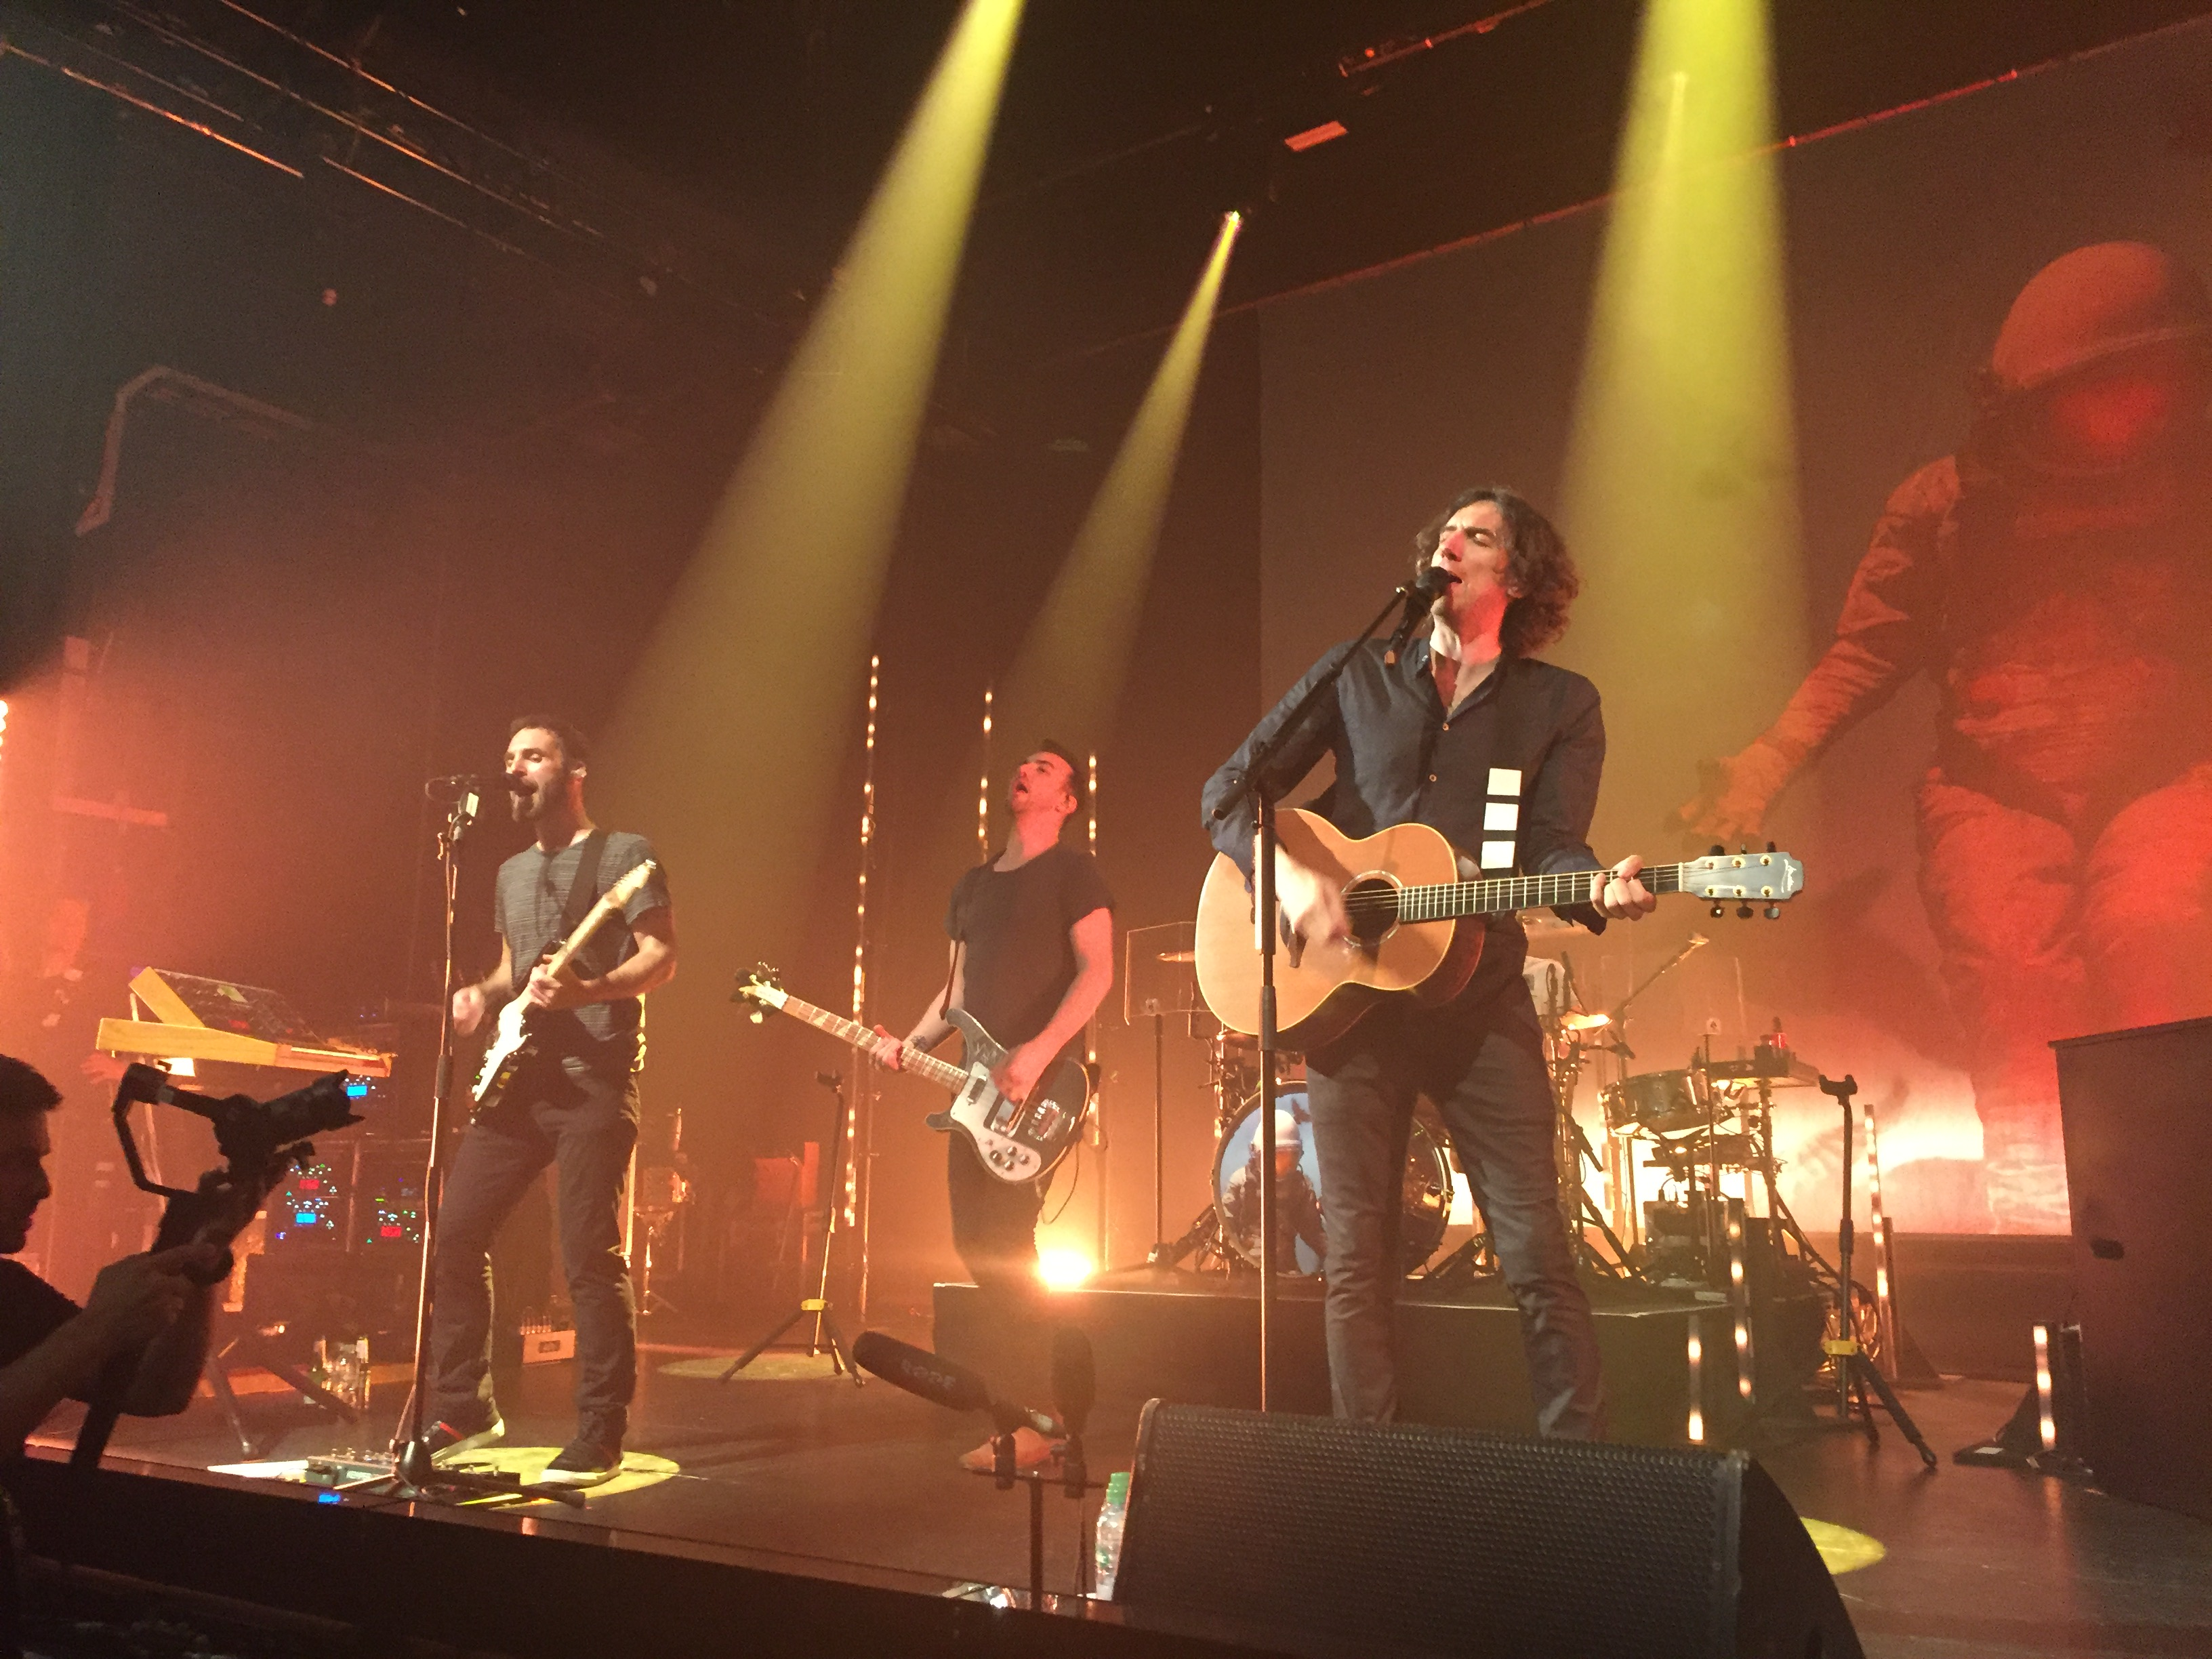 Snow Patrol @ Cork Opera House, Ireland 12/05/2018